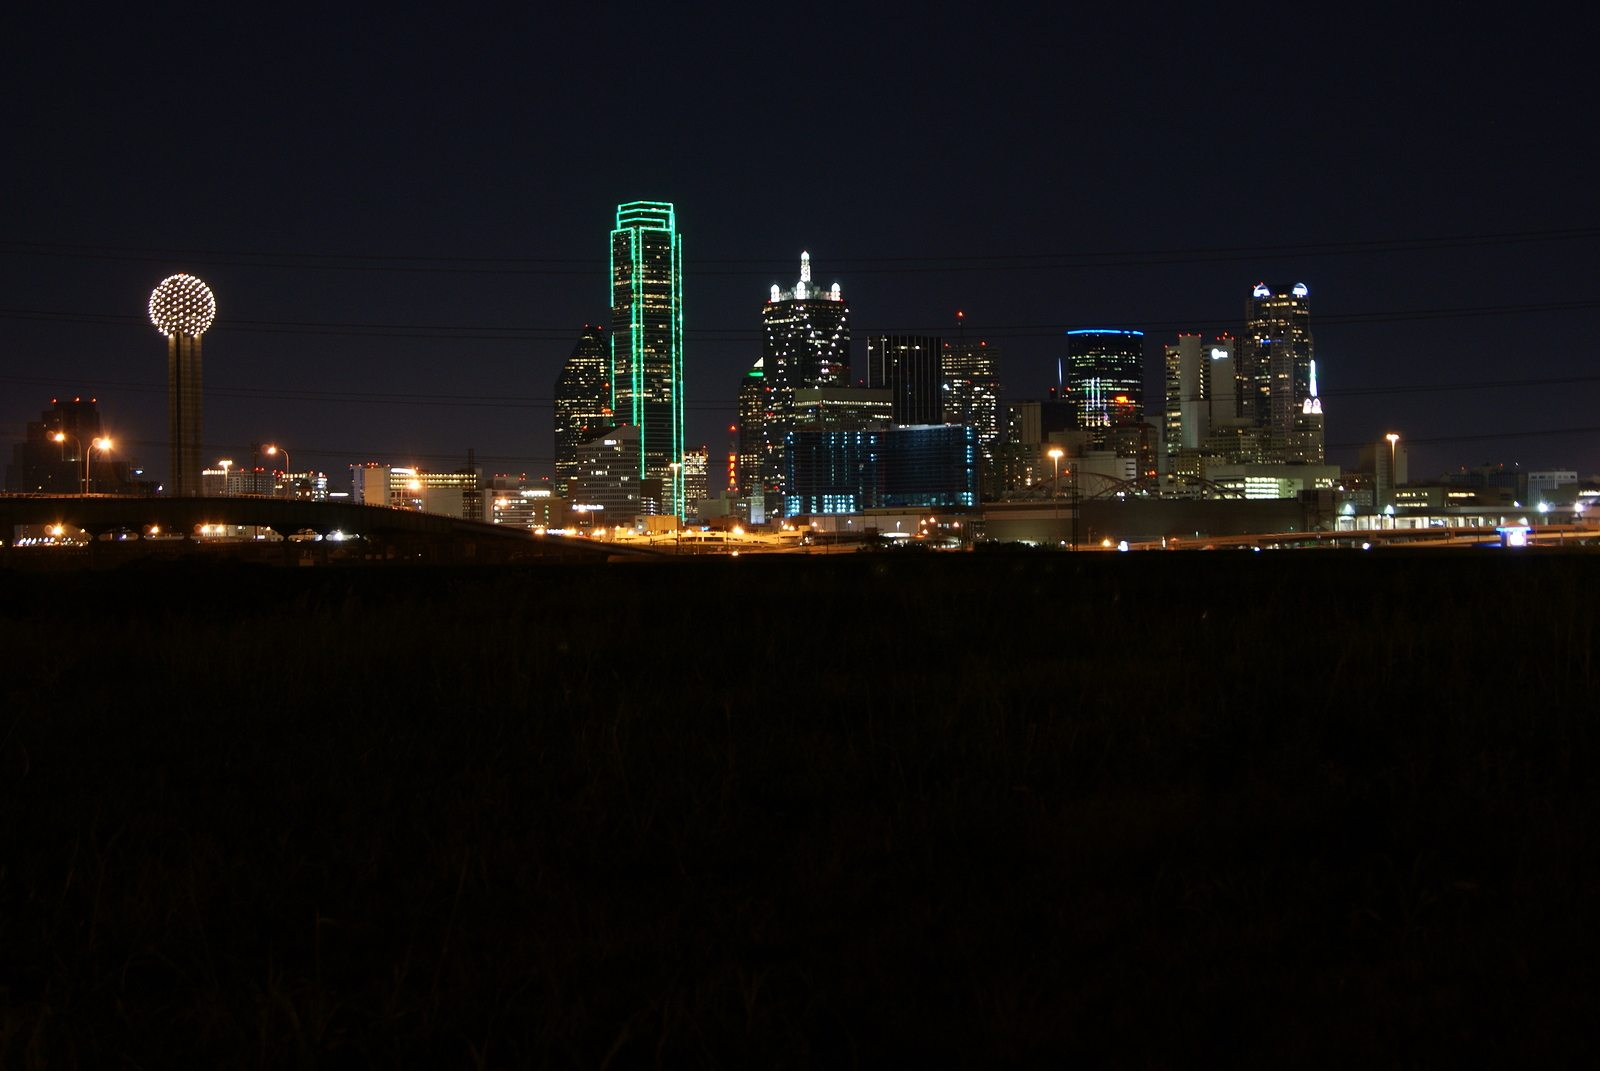 Is there any casinos in dallas texas